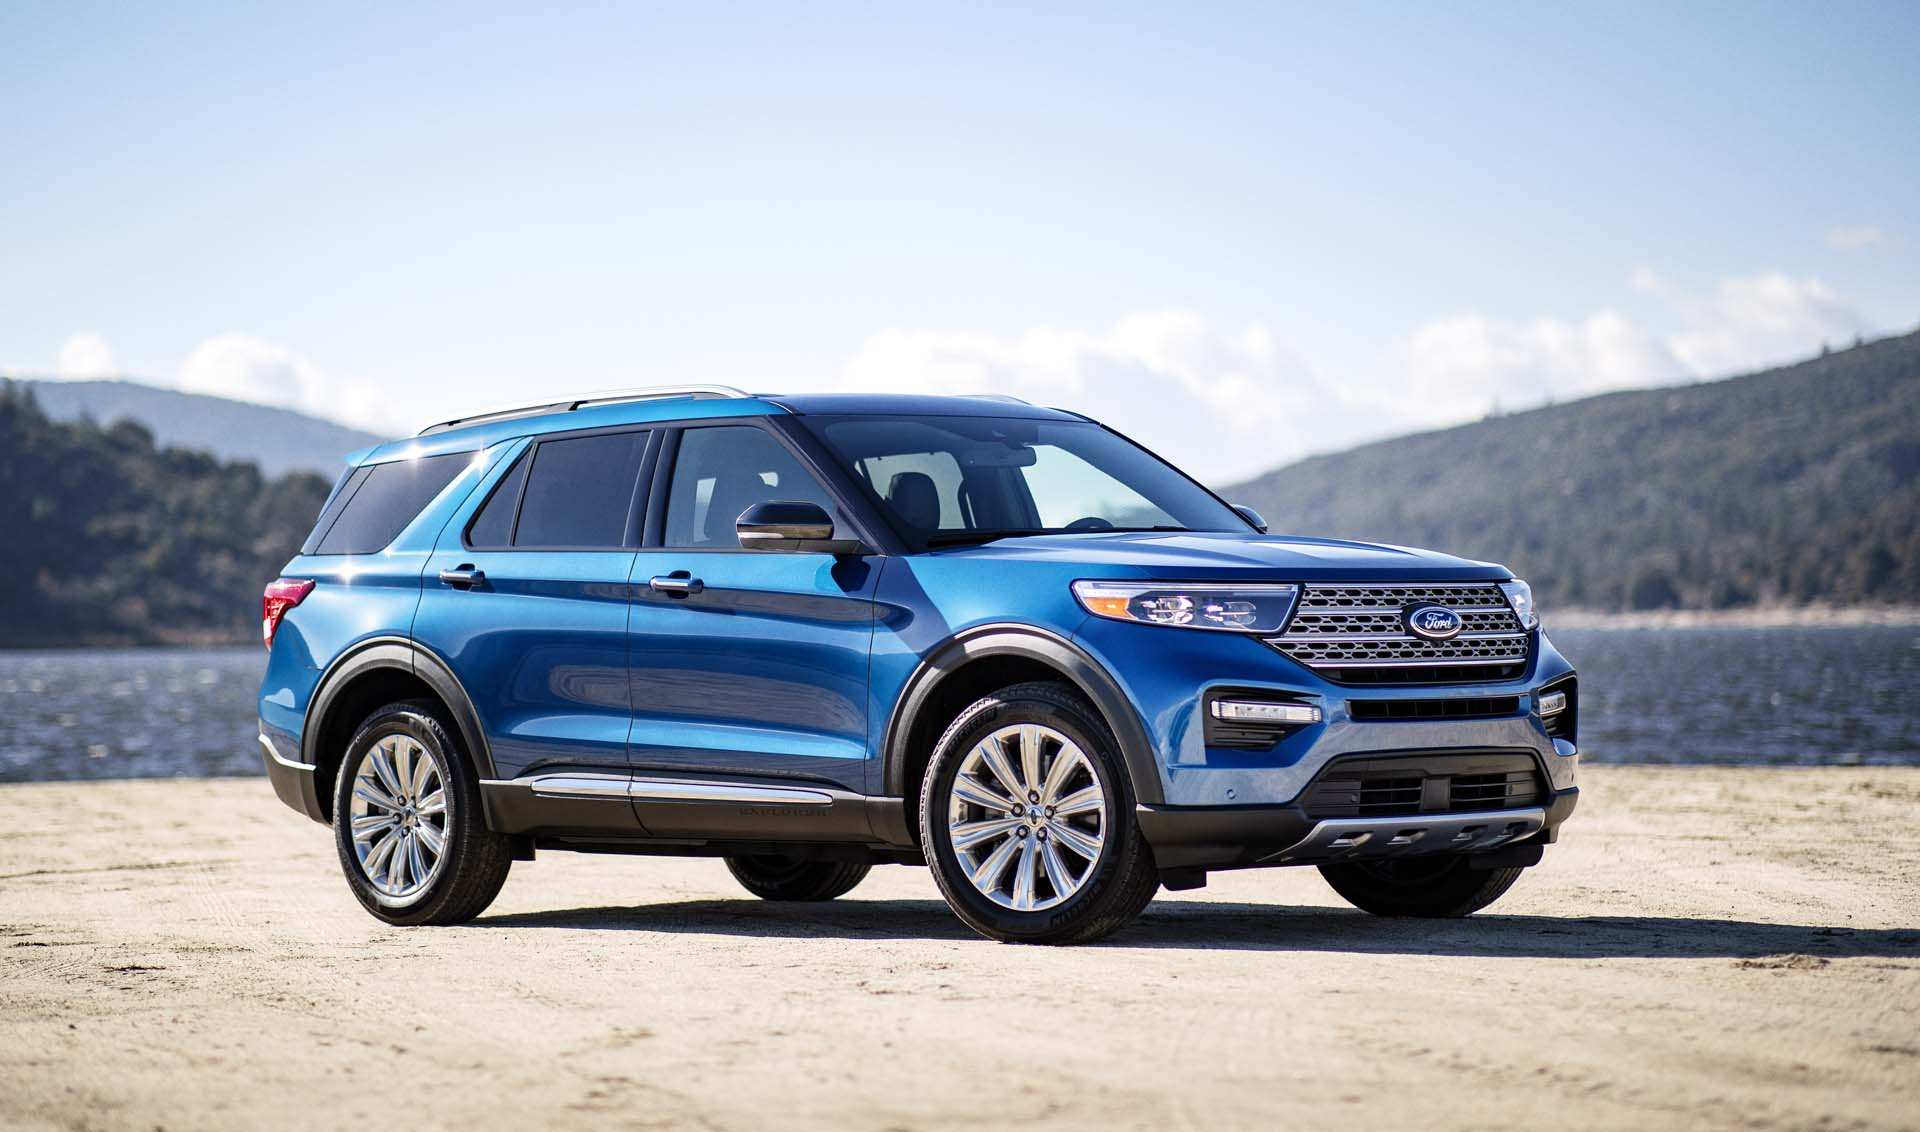 68 Gallery of 2020 Ford Explorer Build And Price Pictures with 2020 Ford Explorer Build And Price